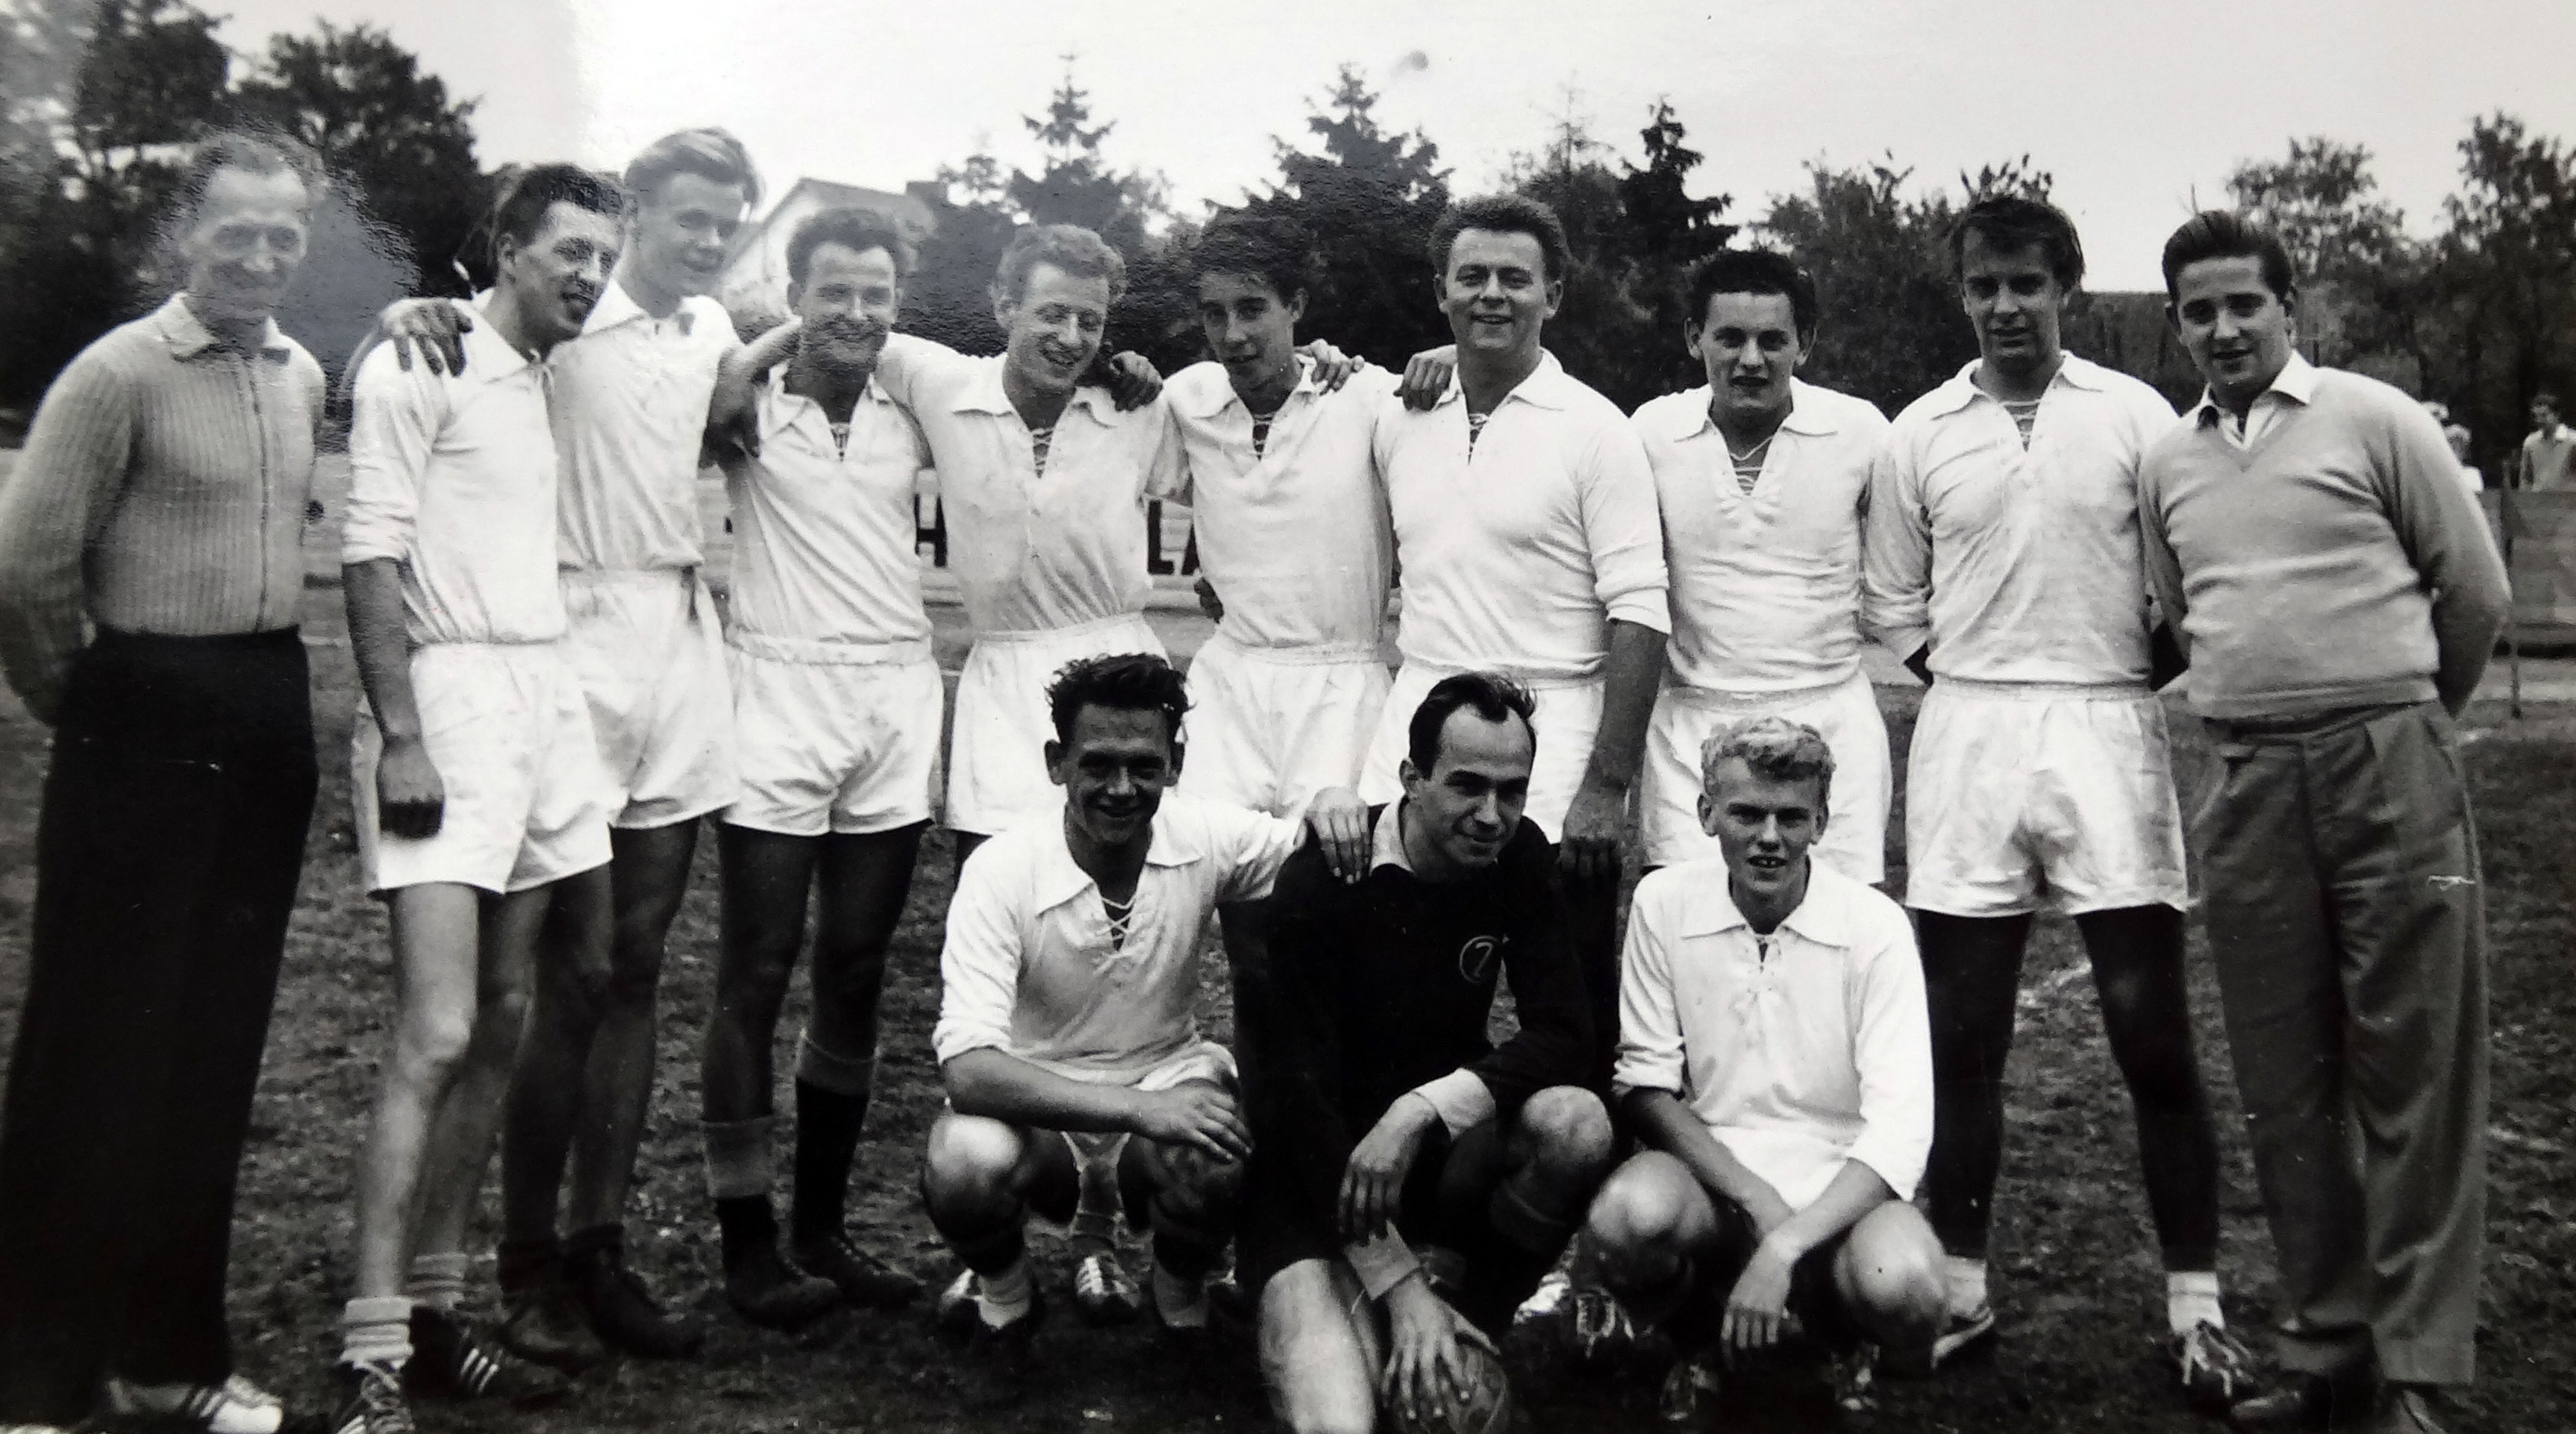 tl_files/verein/bilder/Chronik/Handball 1959Celle.JPG